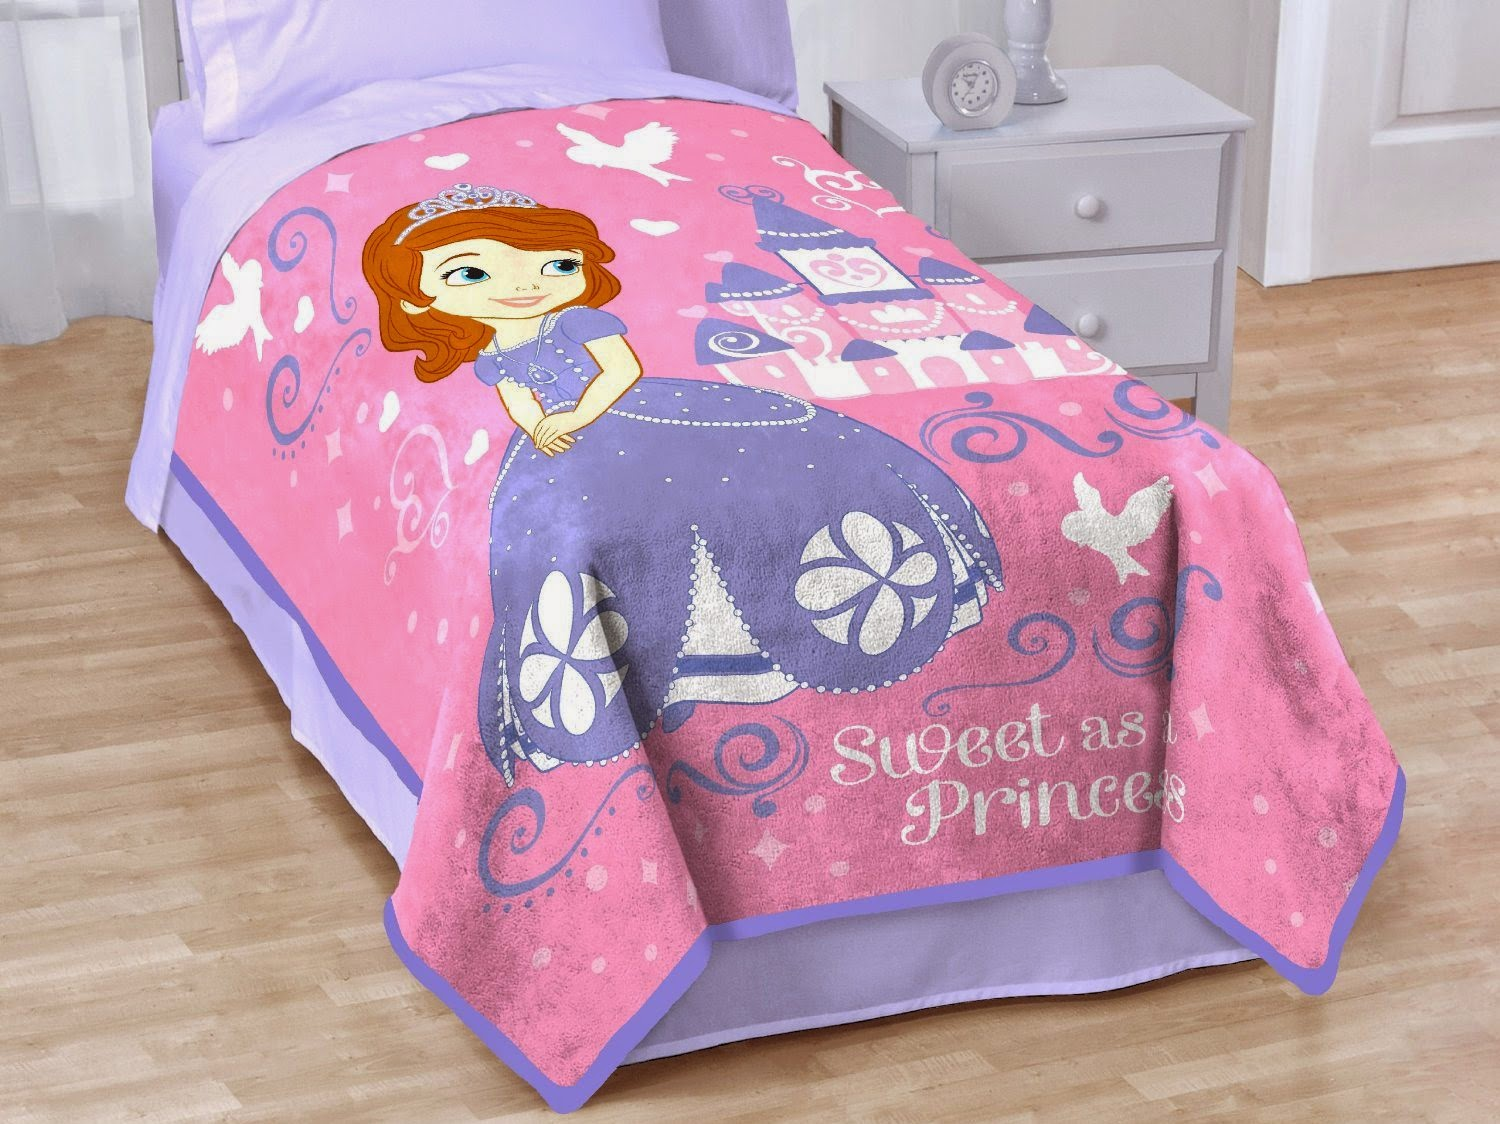 Bedroom Decor Ideas And Designs Top Eight Princess Sofia